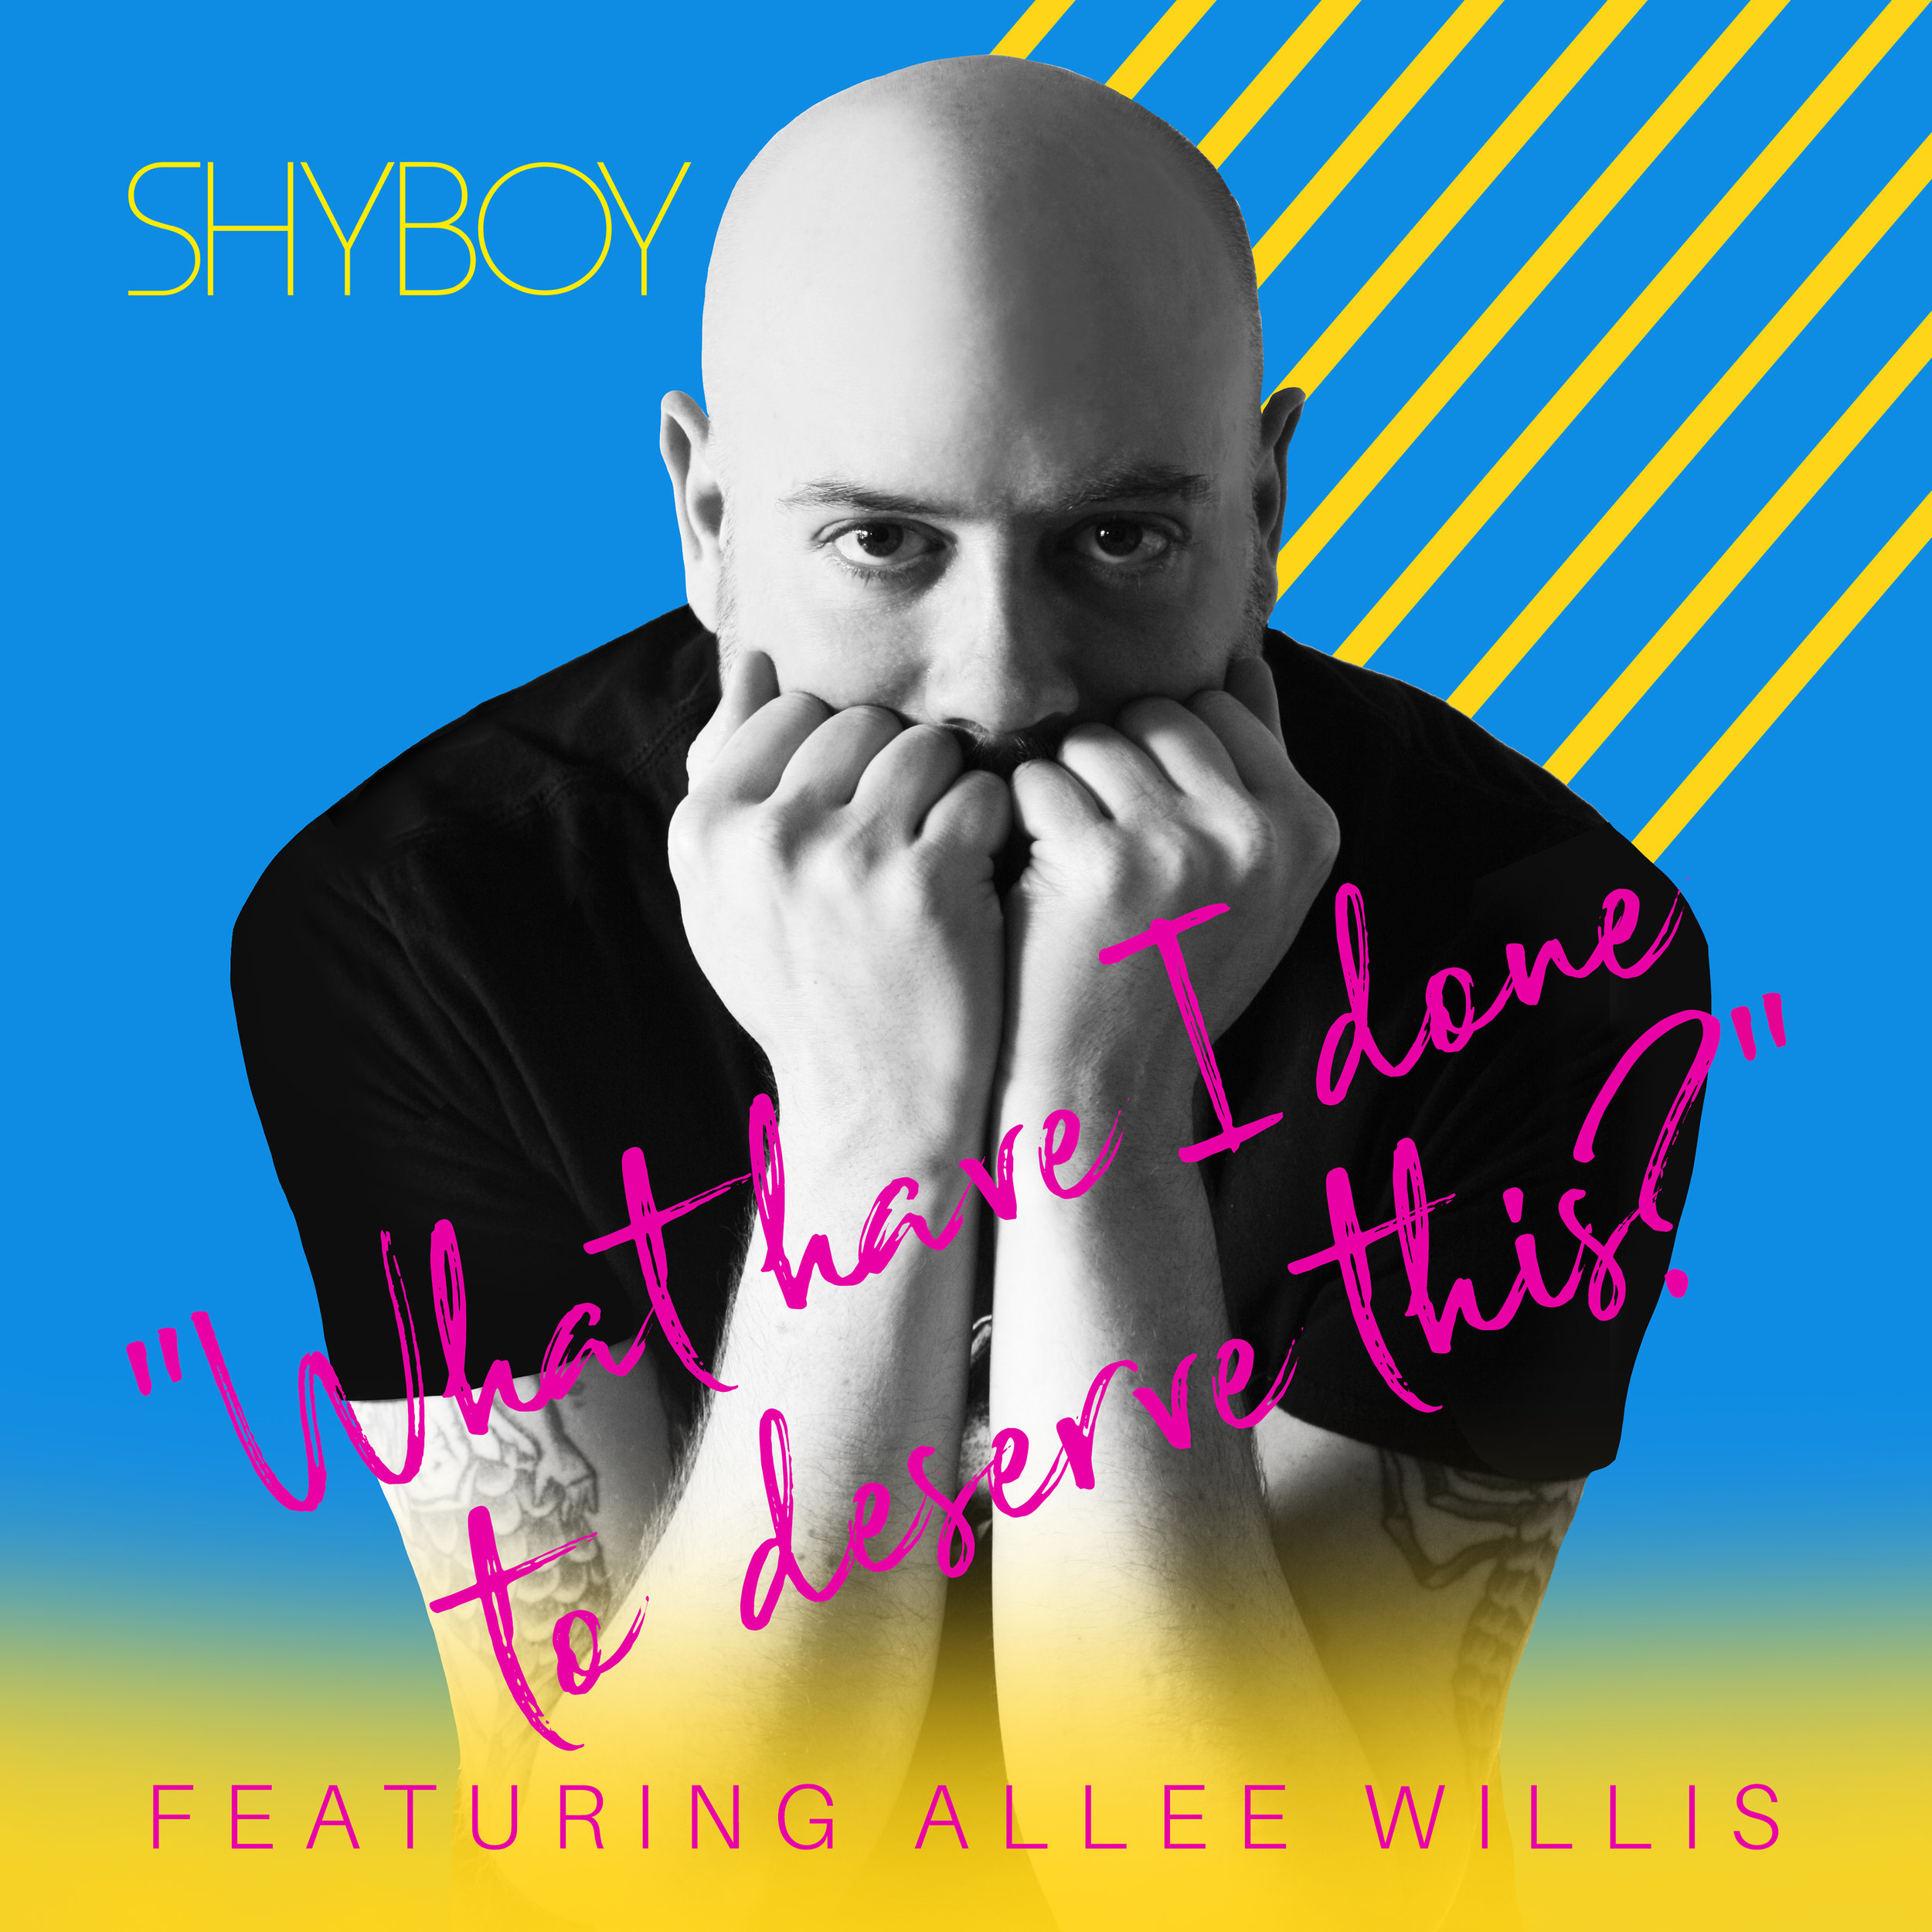 ShyBoy What Have I Done To Deserve This Single Art 3600px.jpg